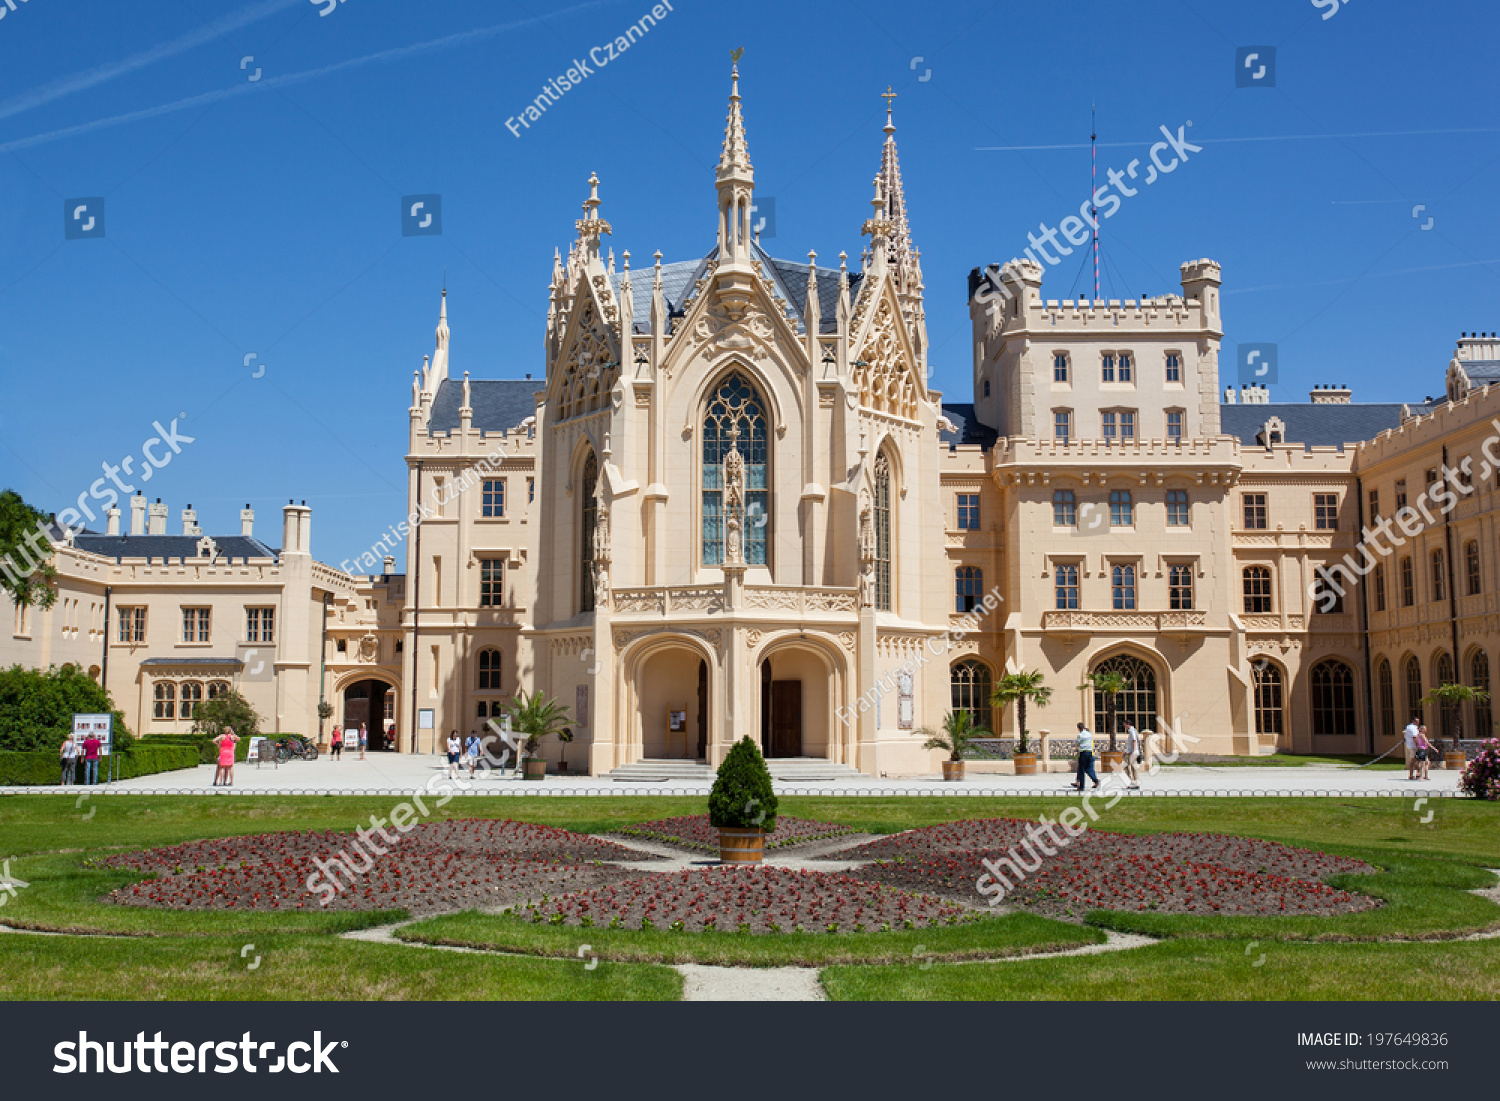 Lednice Chateau Czech Republic Europe Stock Photo